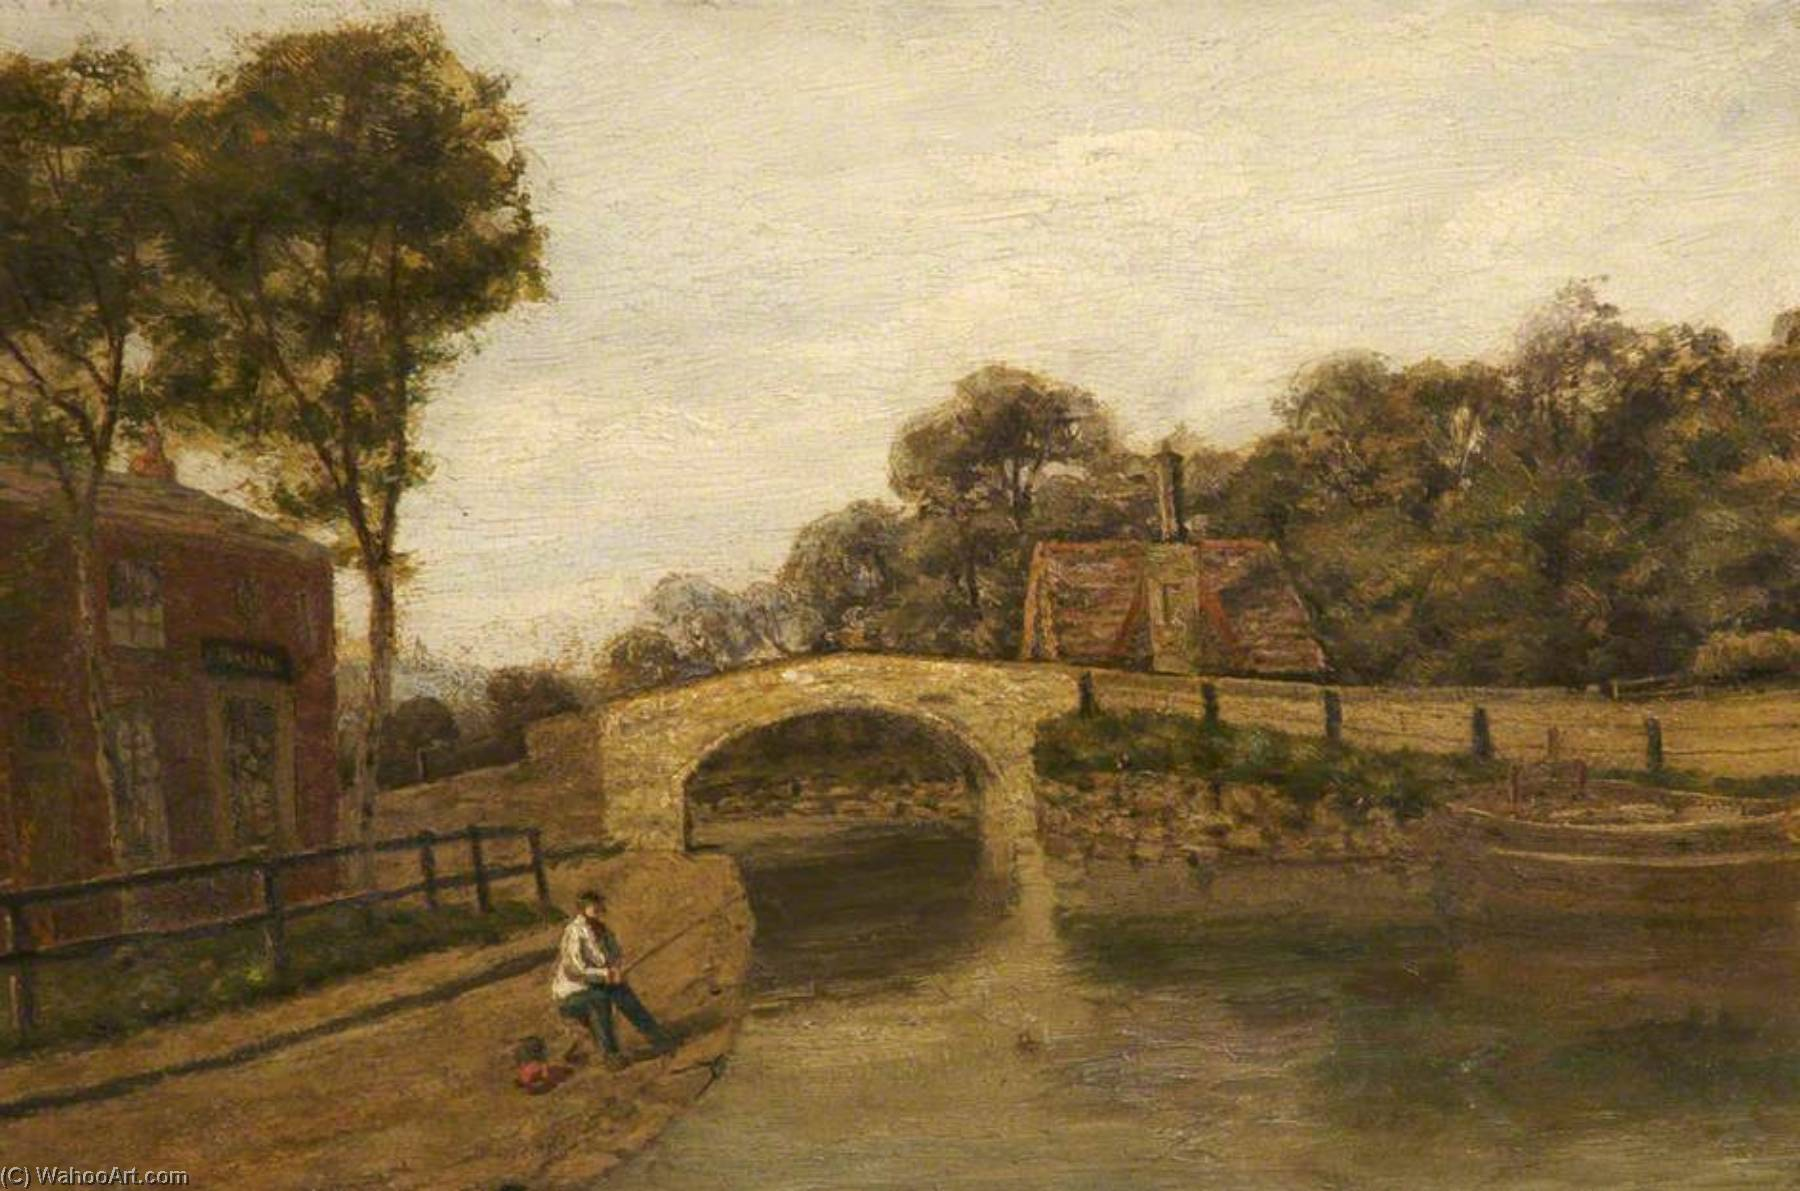 parrin lane bridge, 1890 por William Worthington Jolley | Reproduções De Pinturas William Worthington Jolley | WahooArt.com